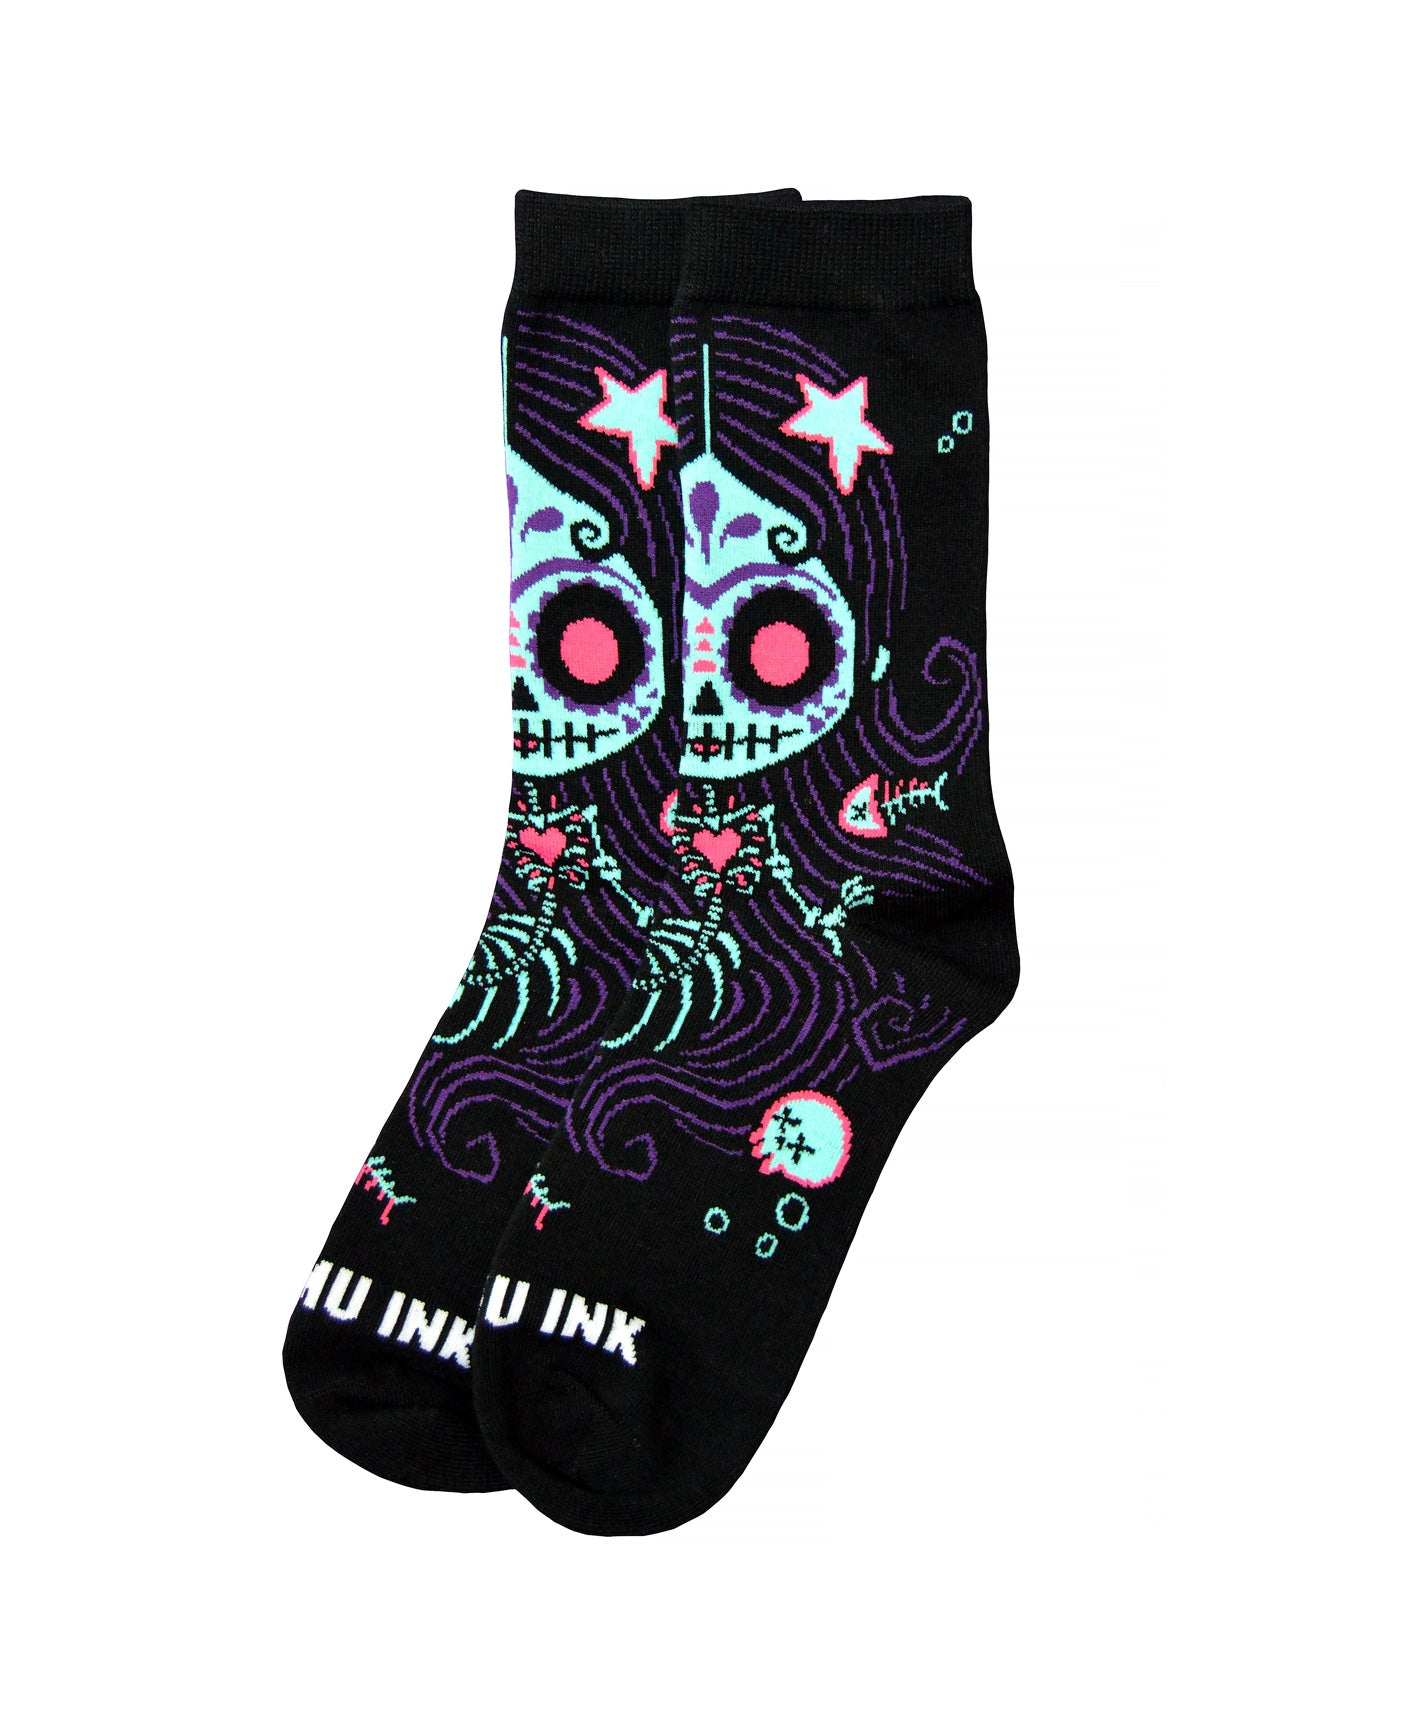 Akumu Ink La Sirena Unisex Socks, Accessories, Akumu ink, goth, emo